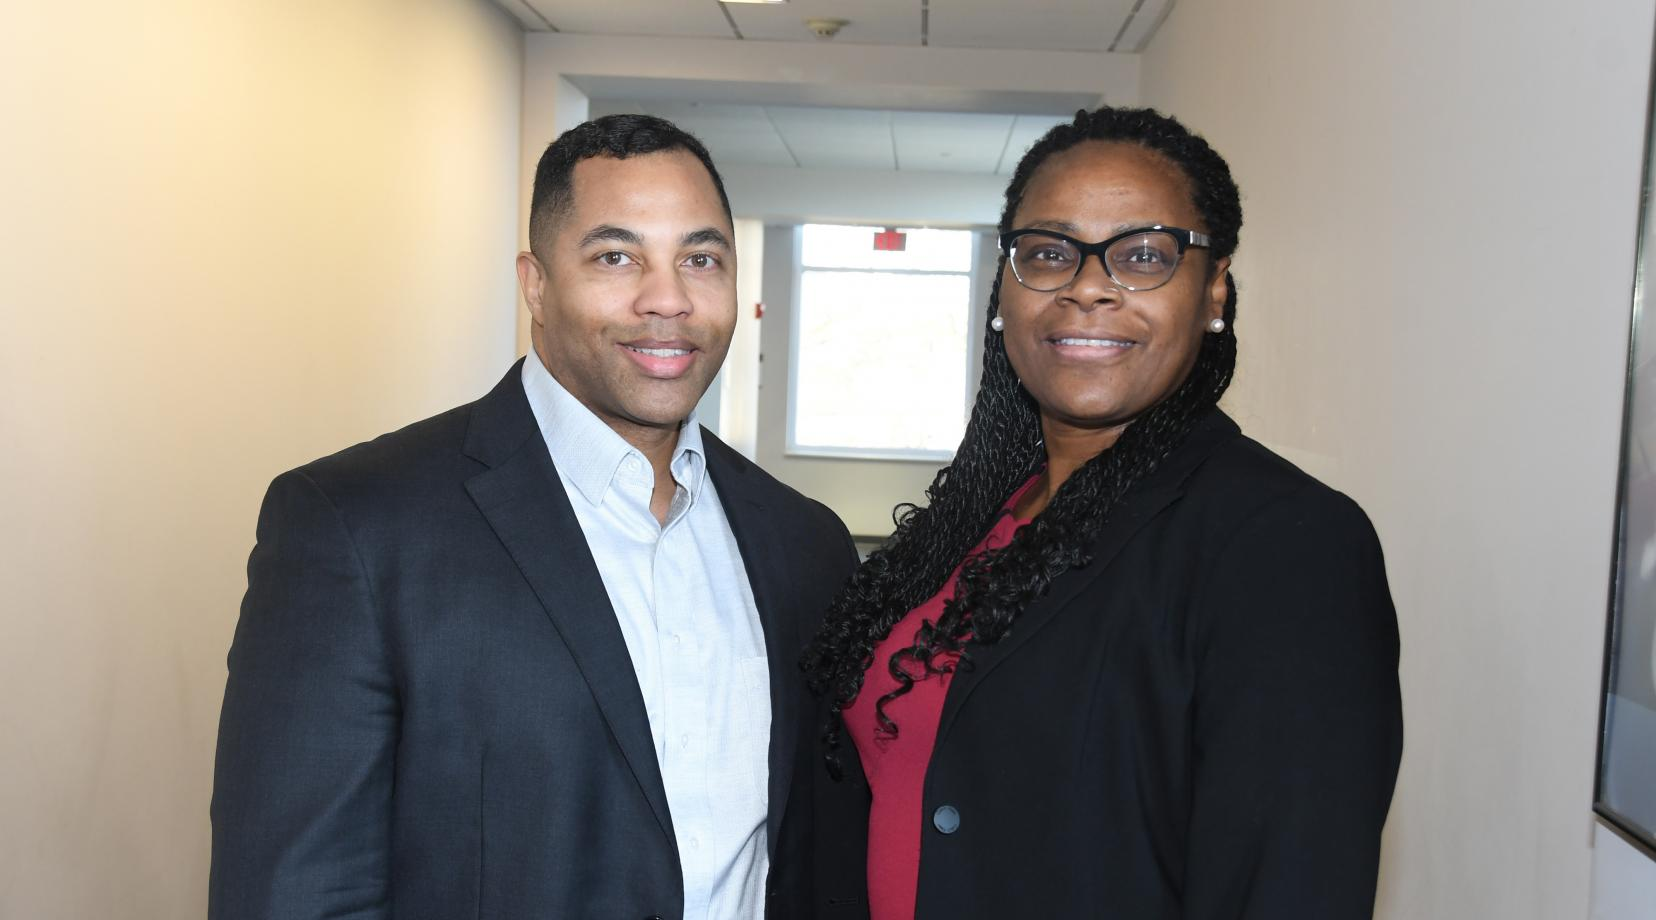 DSU's LaShawne Pryor and Rosetta Brickhouse have been selected to serve as Honorary Commanders of Dover Air Force Base's 436th Force Support Squadron.